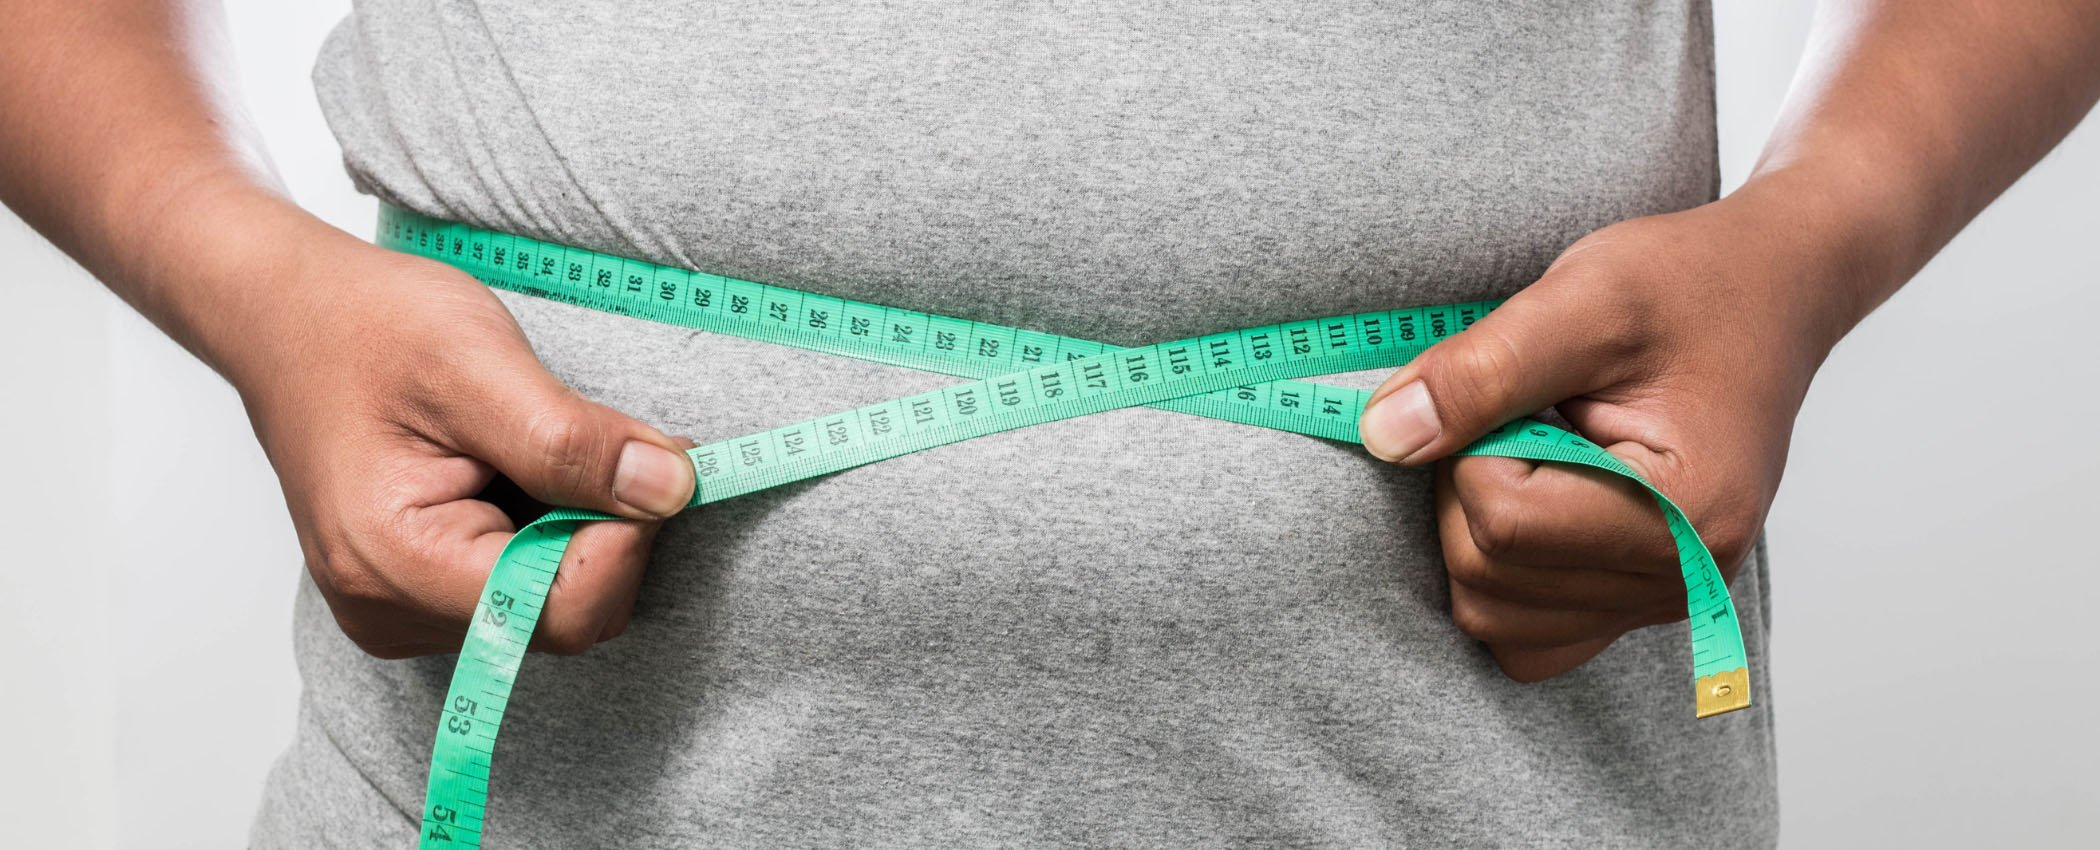 Renters, mortgage-borrowers and regional Australians more likely to be overweight, obese: new report